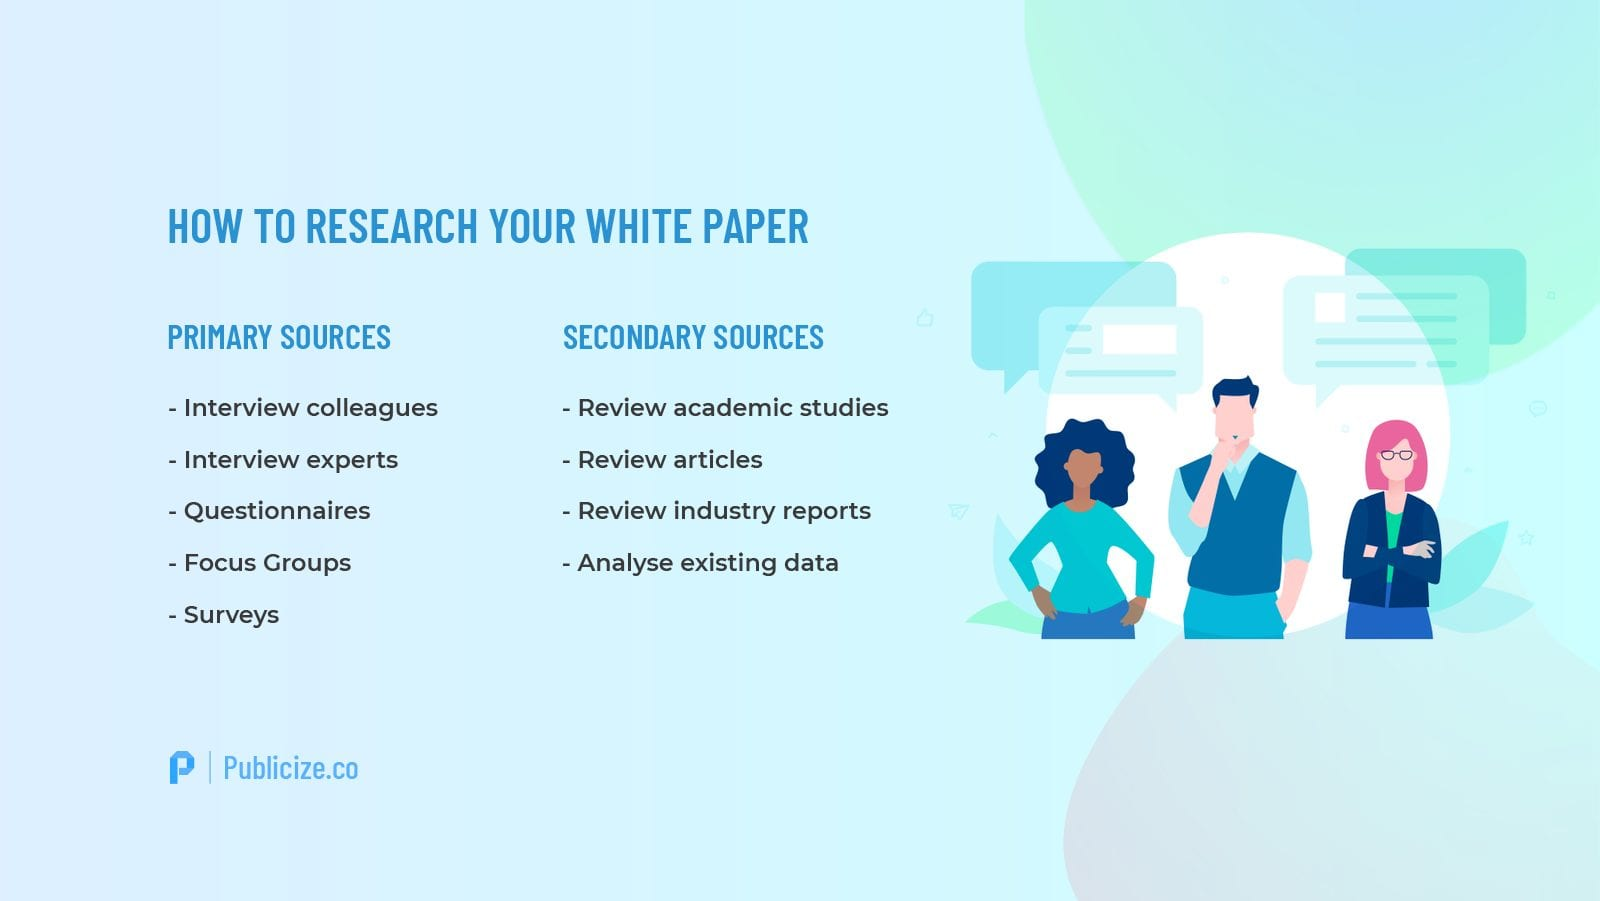 How to research a white paper infographic